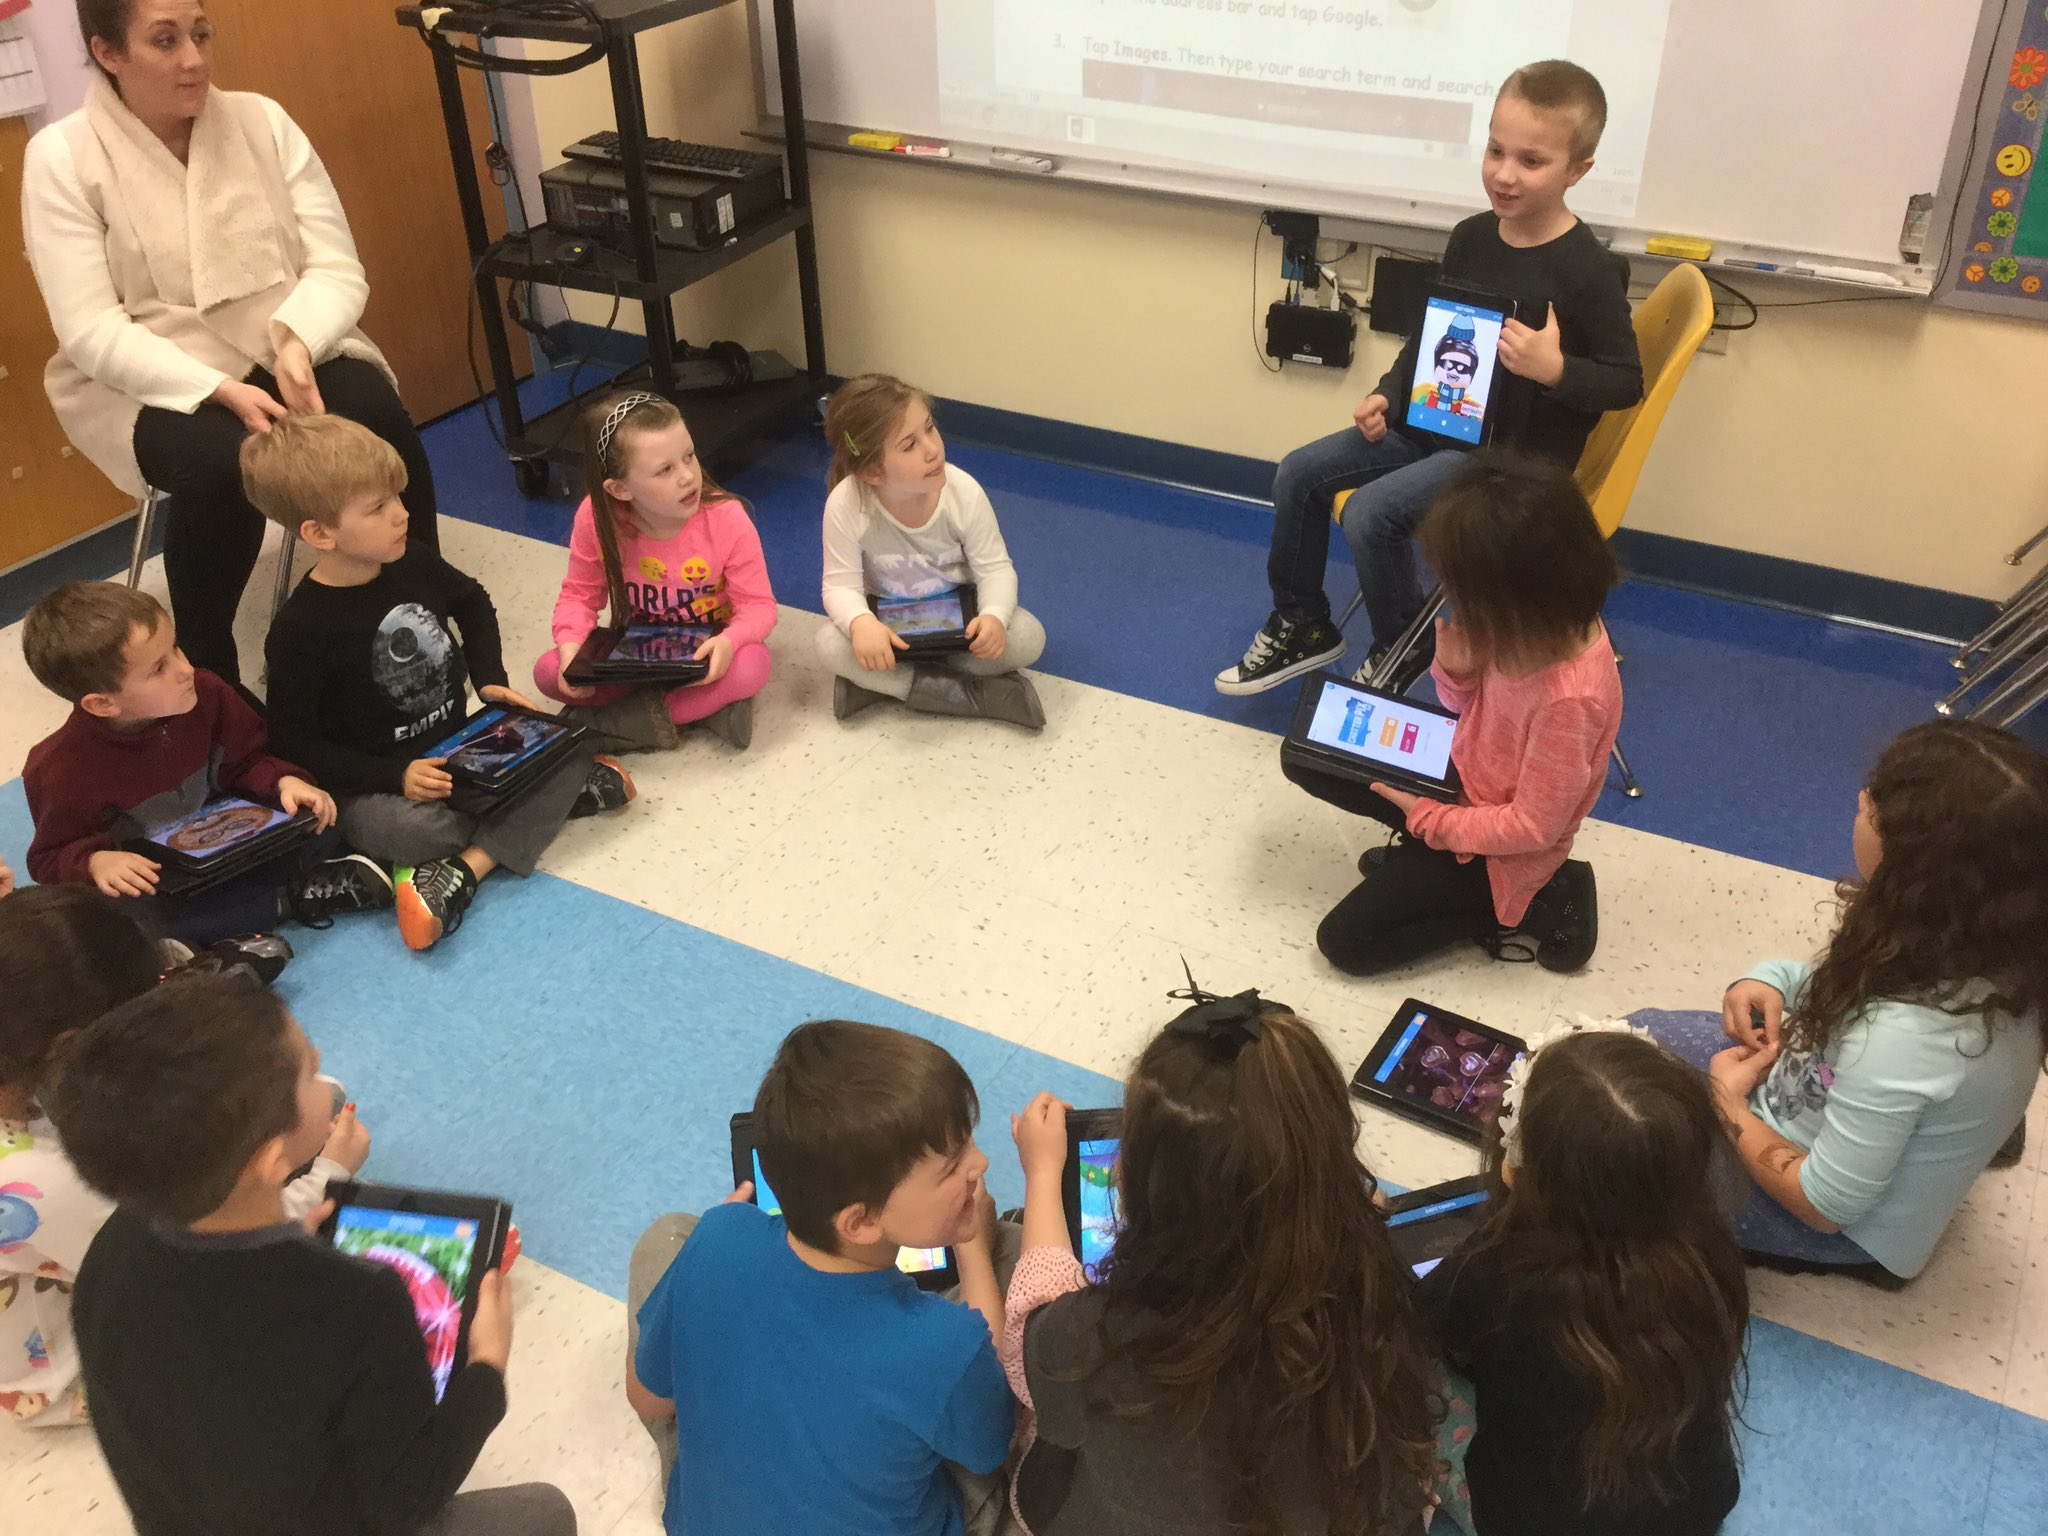 Creators in @jsindel41 Gr 1 class learning about dialogue as they proudly share their @ChatterPixIt multimedia creations! #WeArePlainedge https://t.co/P4pvu8veJa